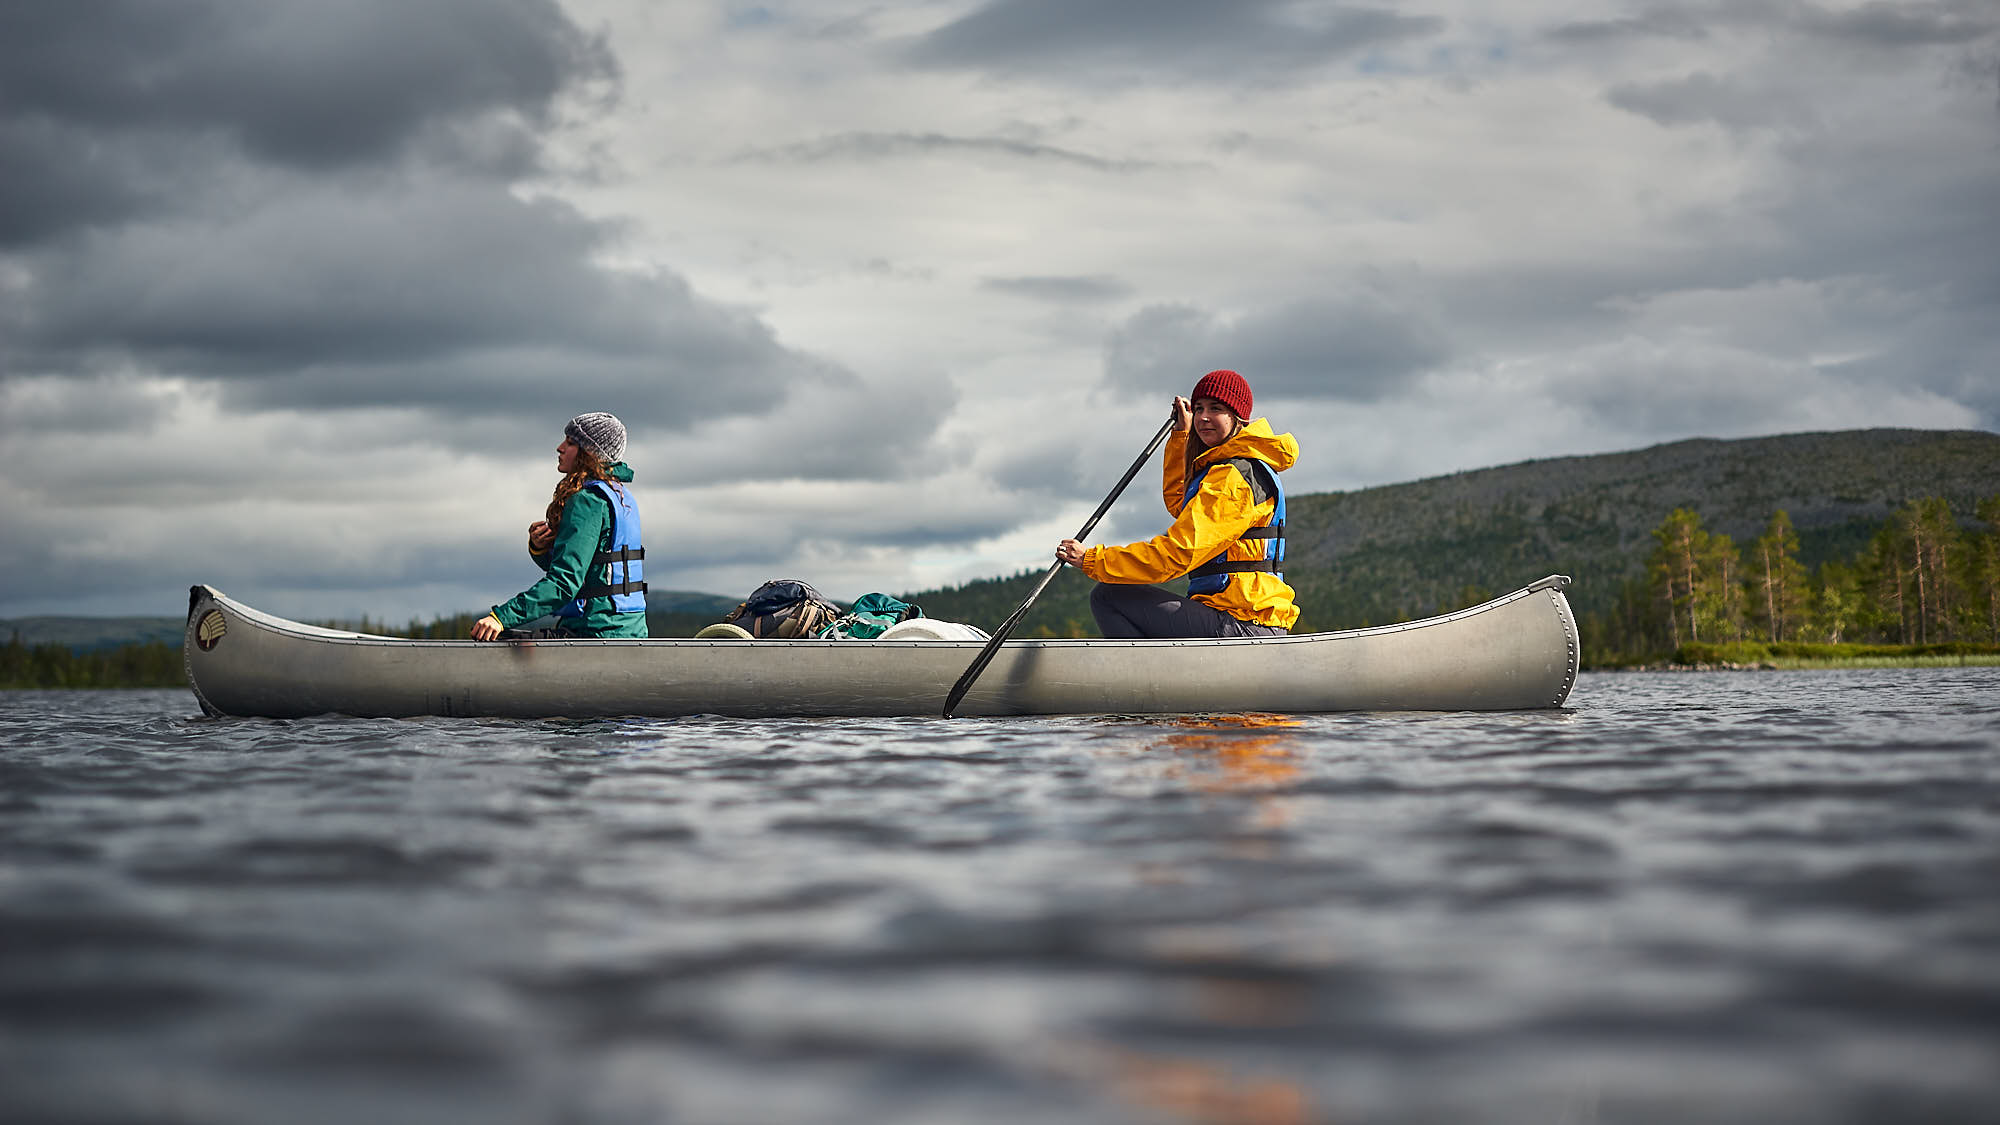 Low angle view of two girls in a canoe on a lake in Norway